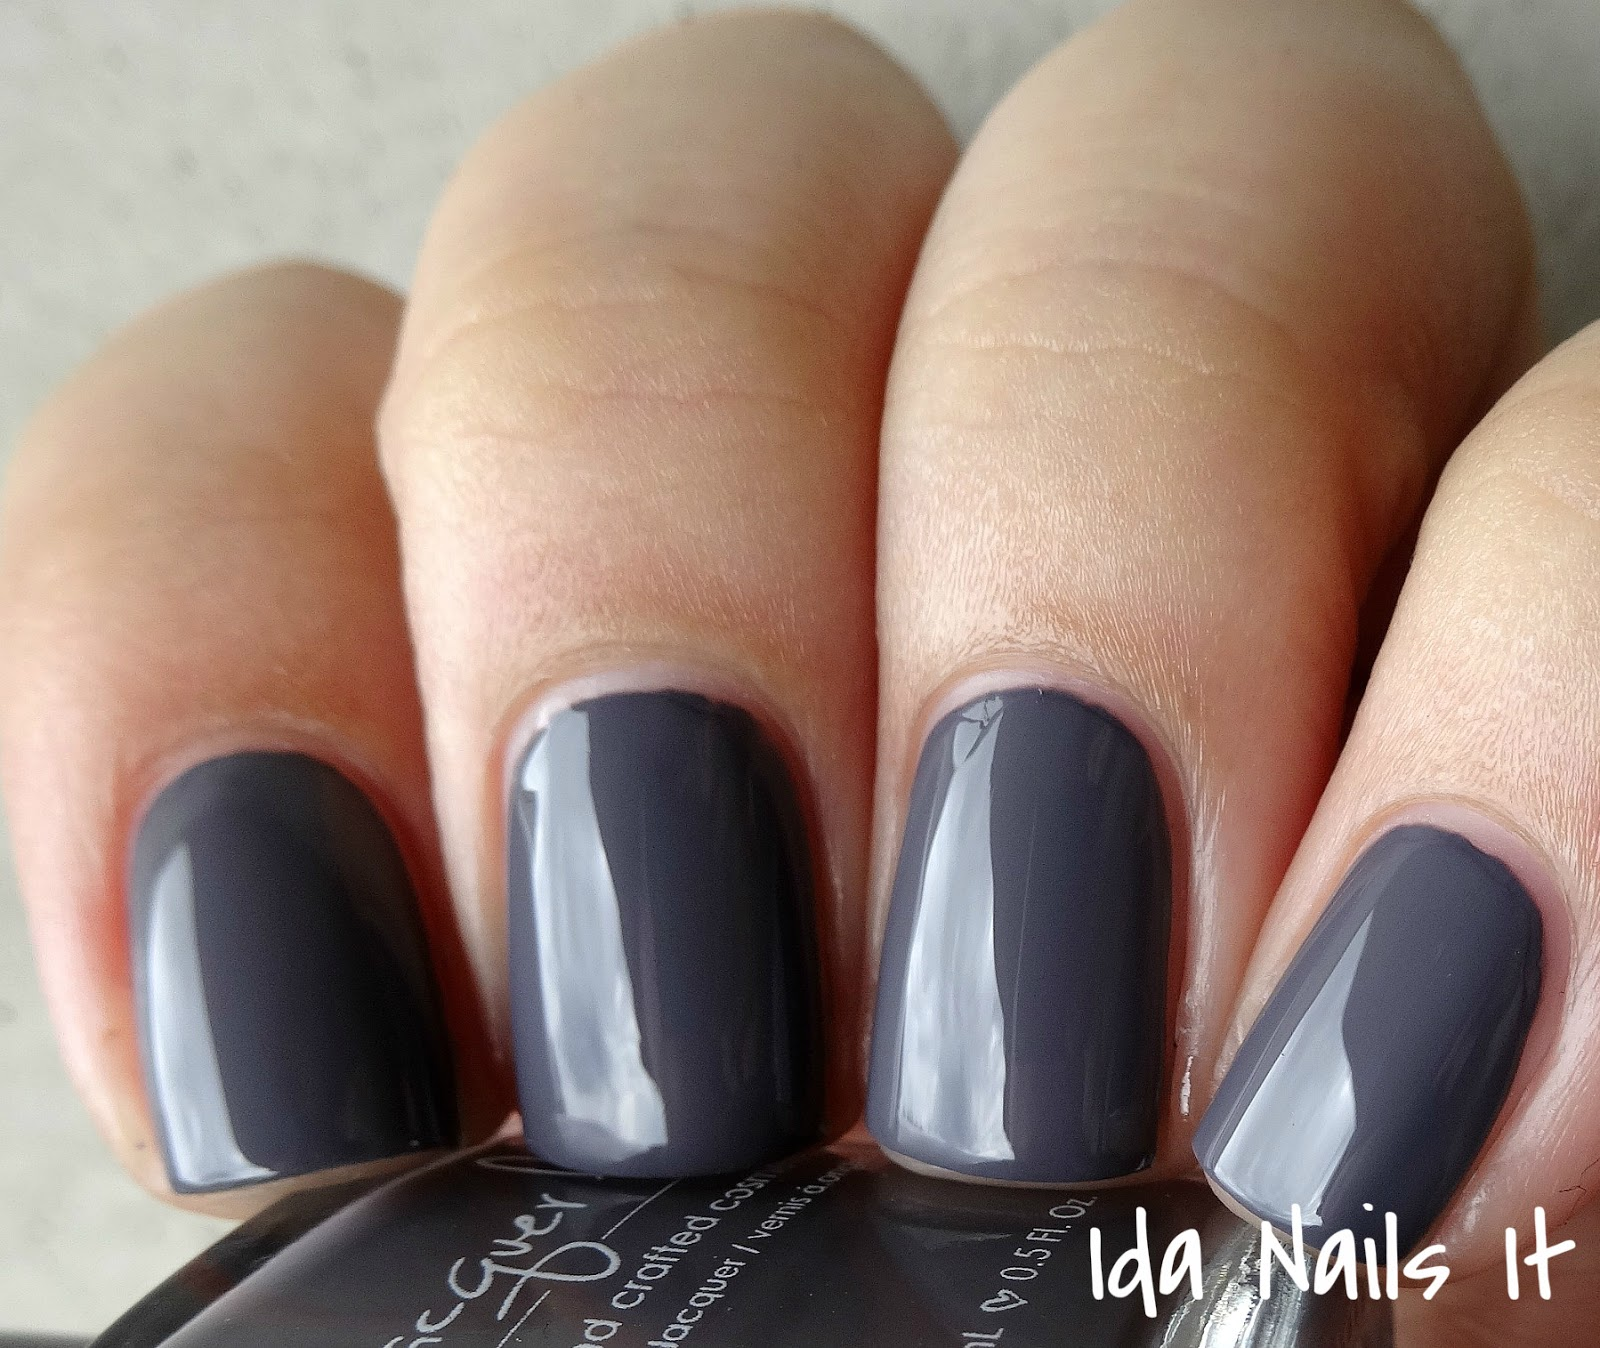 Ida Nails It: Lacquer Lust Au Natural Collection: Swatches and Review